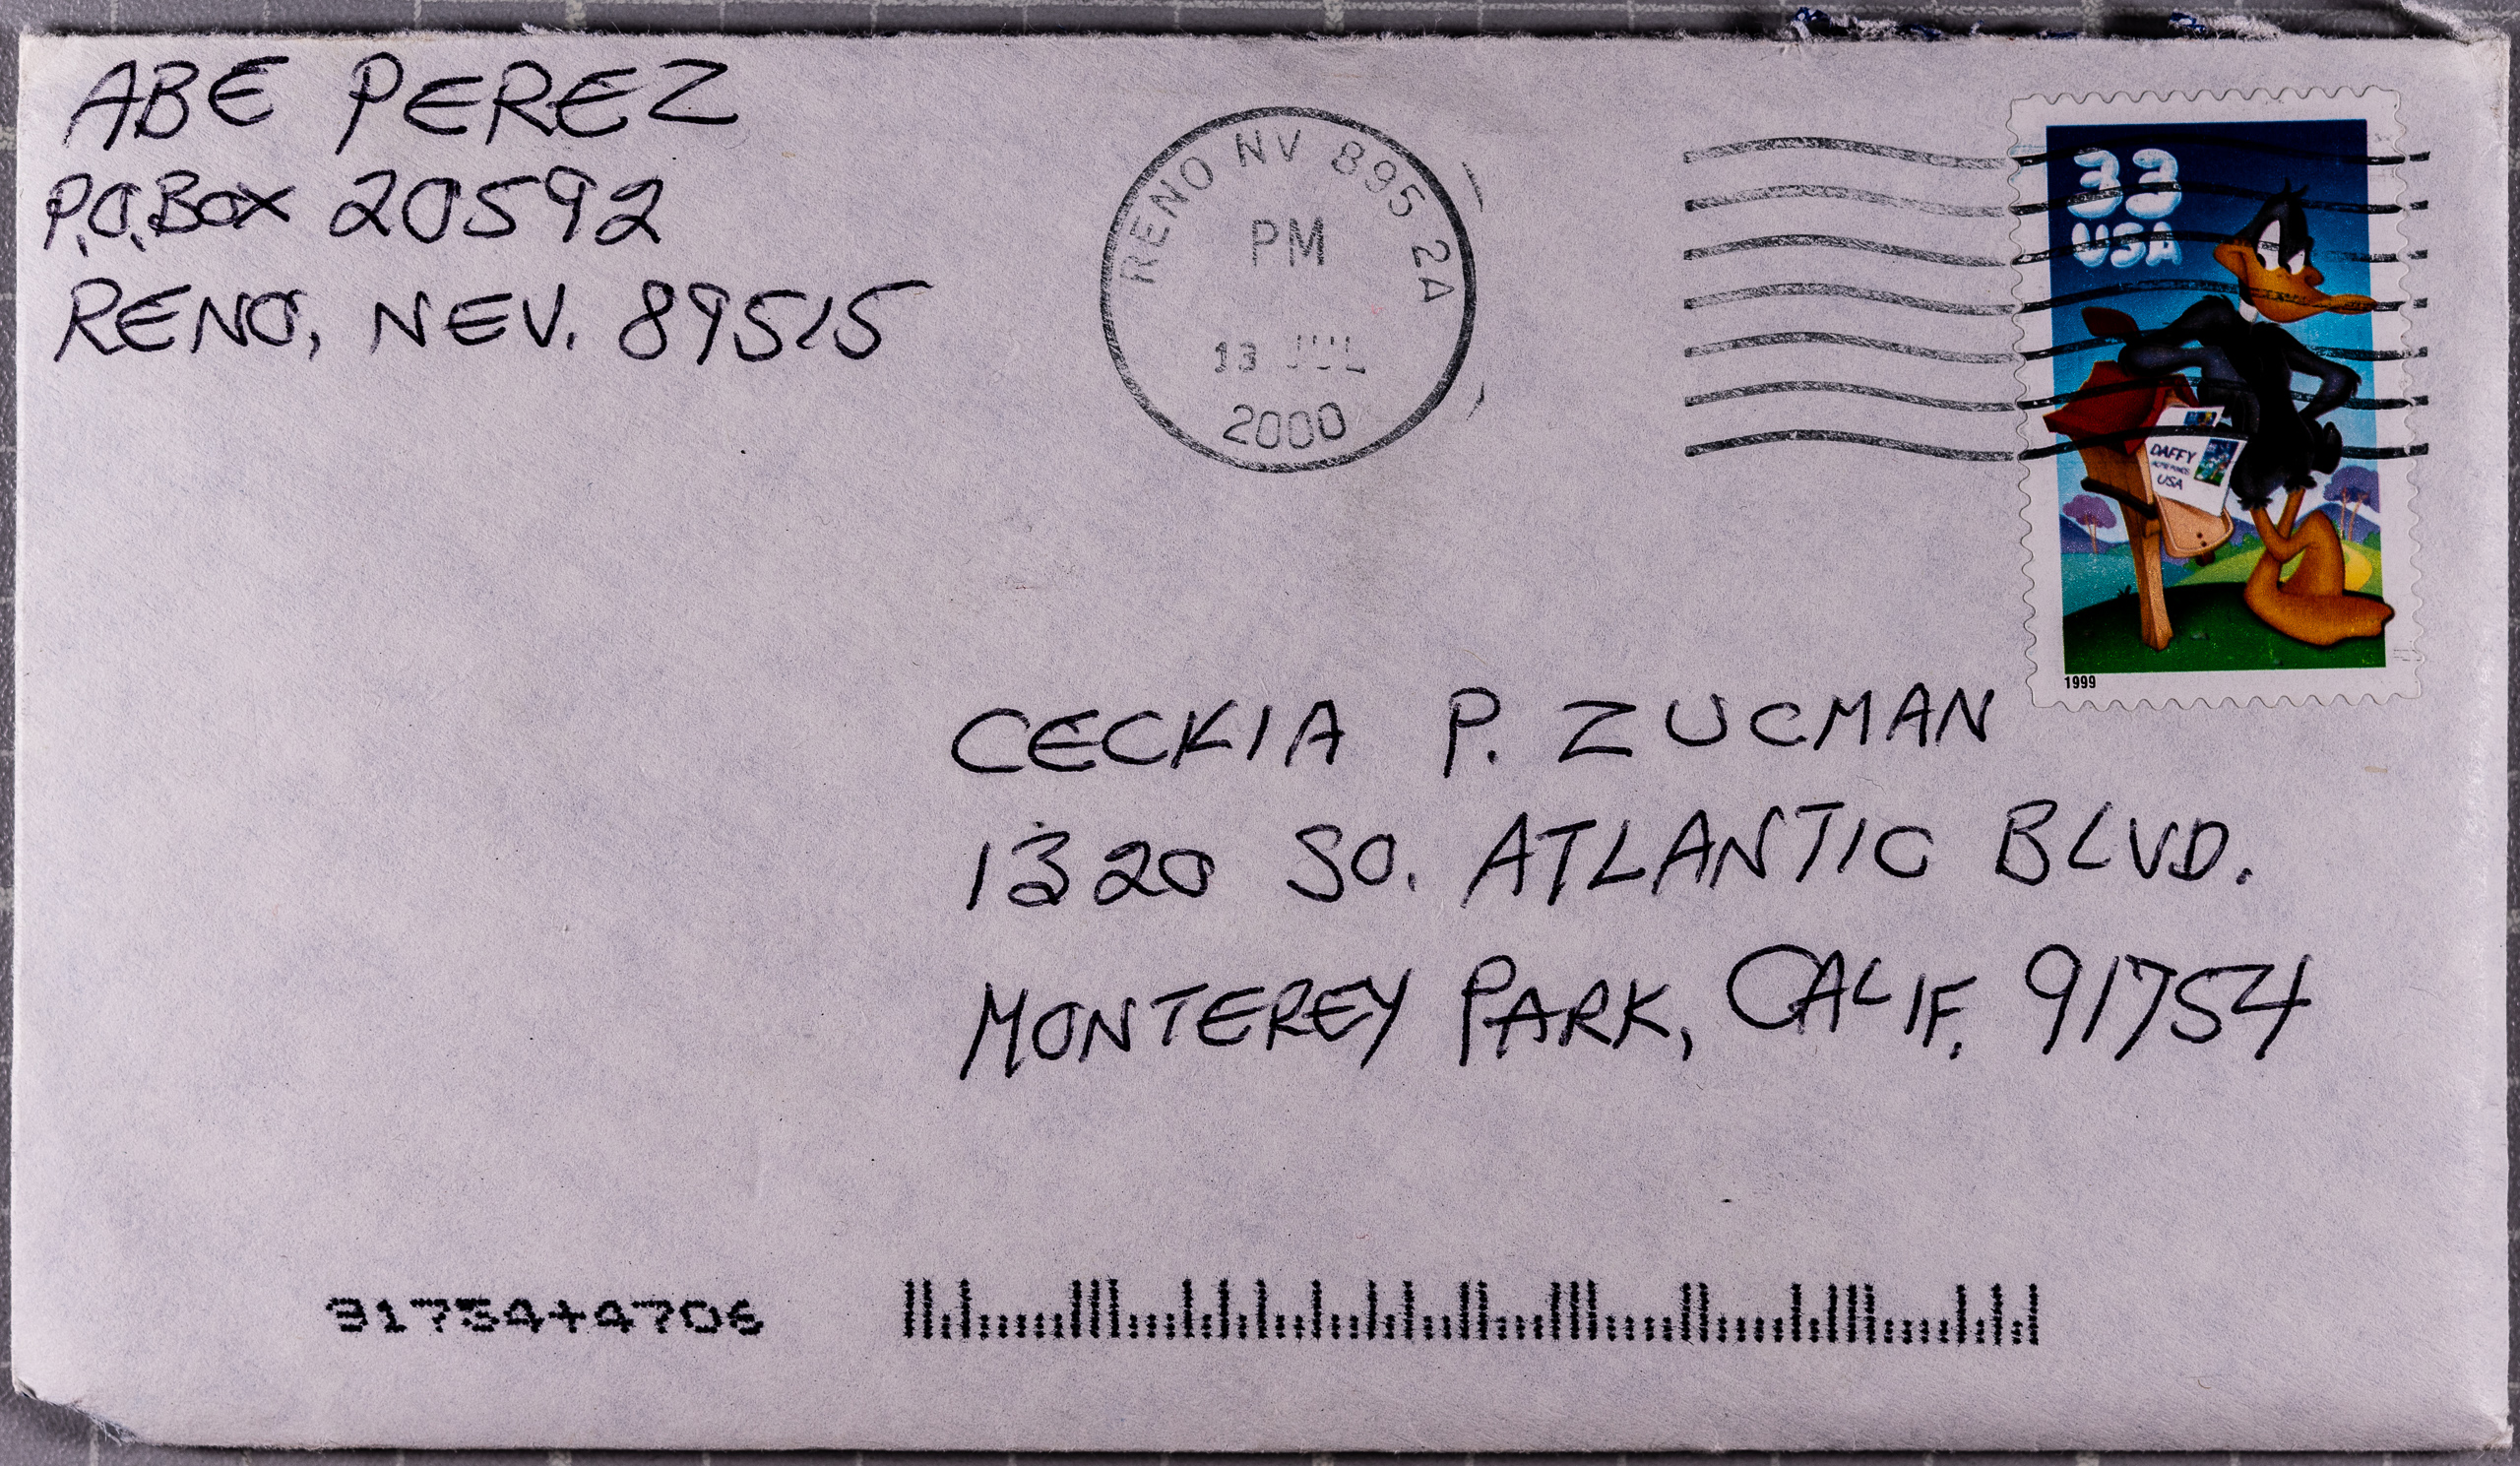 photo of a letter from Abe Perez (Reno, Nevada) to Cecilia P. Zucman (Monterey Park, CA) postmarked 13 July 2000.